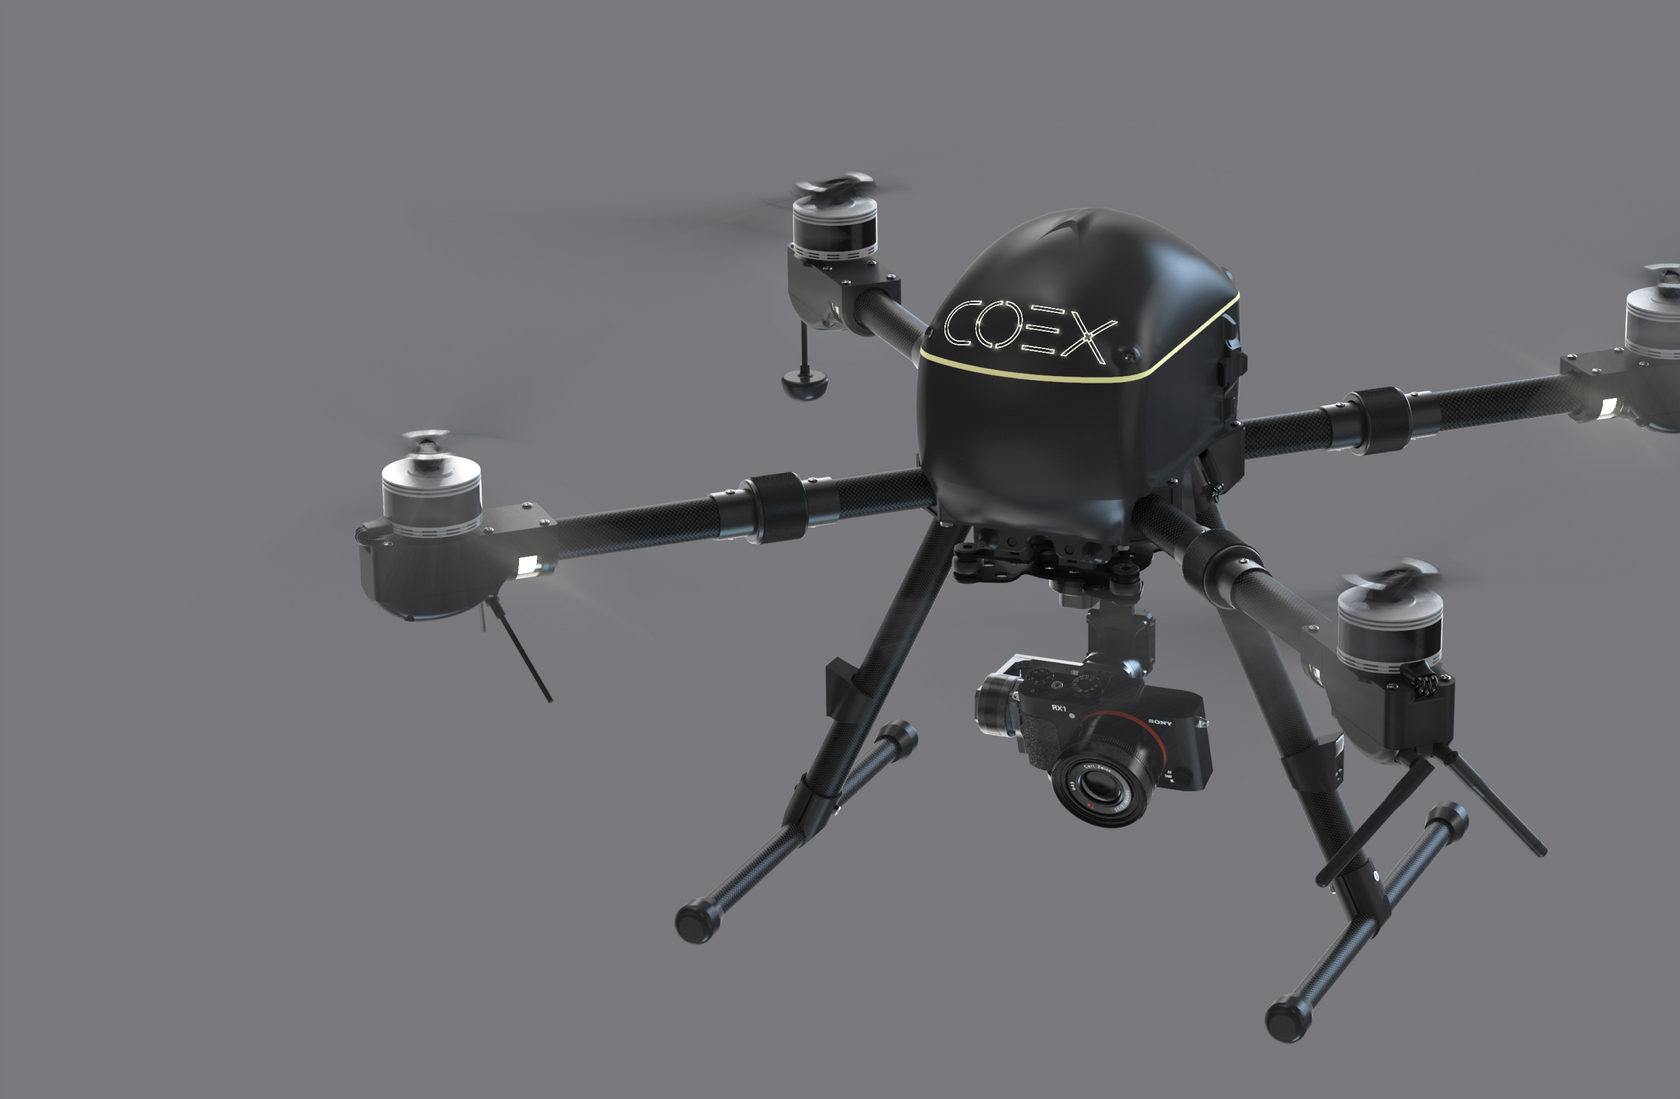 COEX Pelican — Autonomous Drone for Monitoring and Delivery